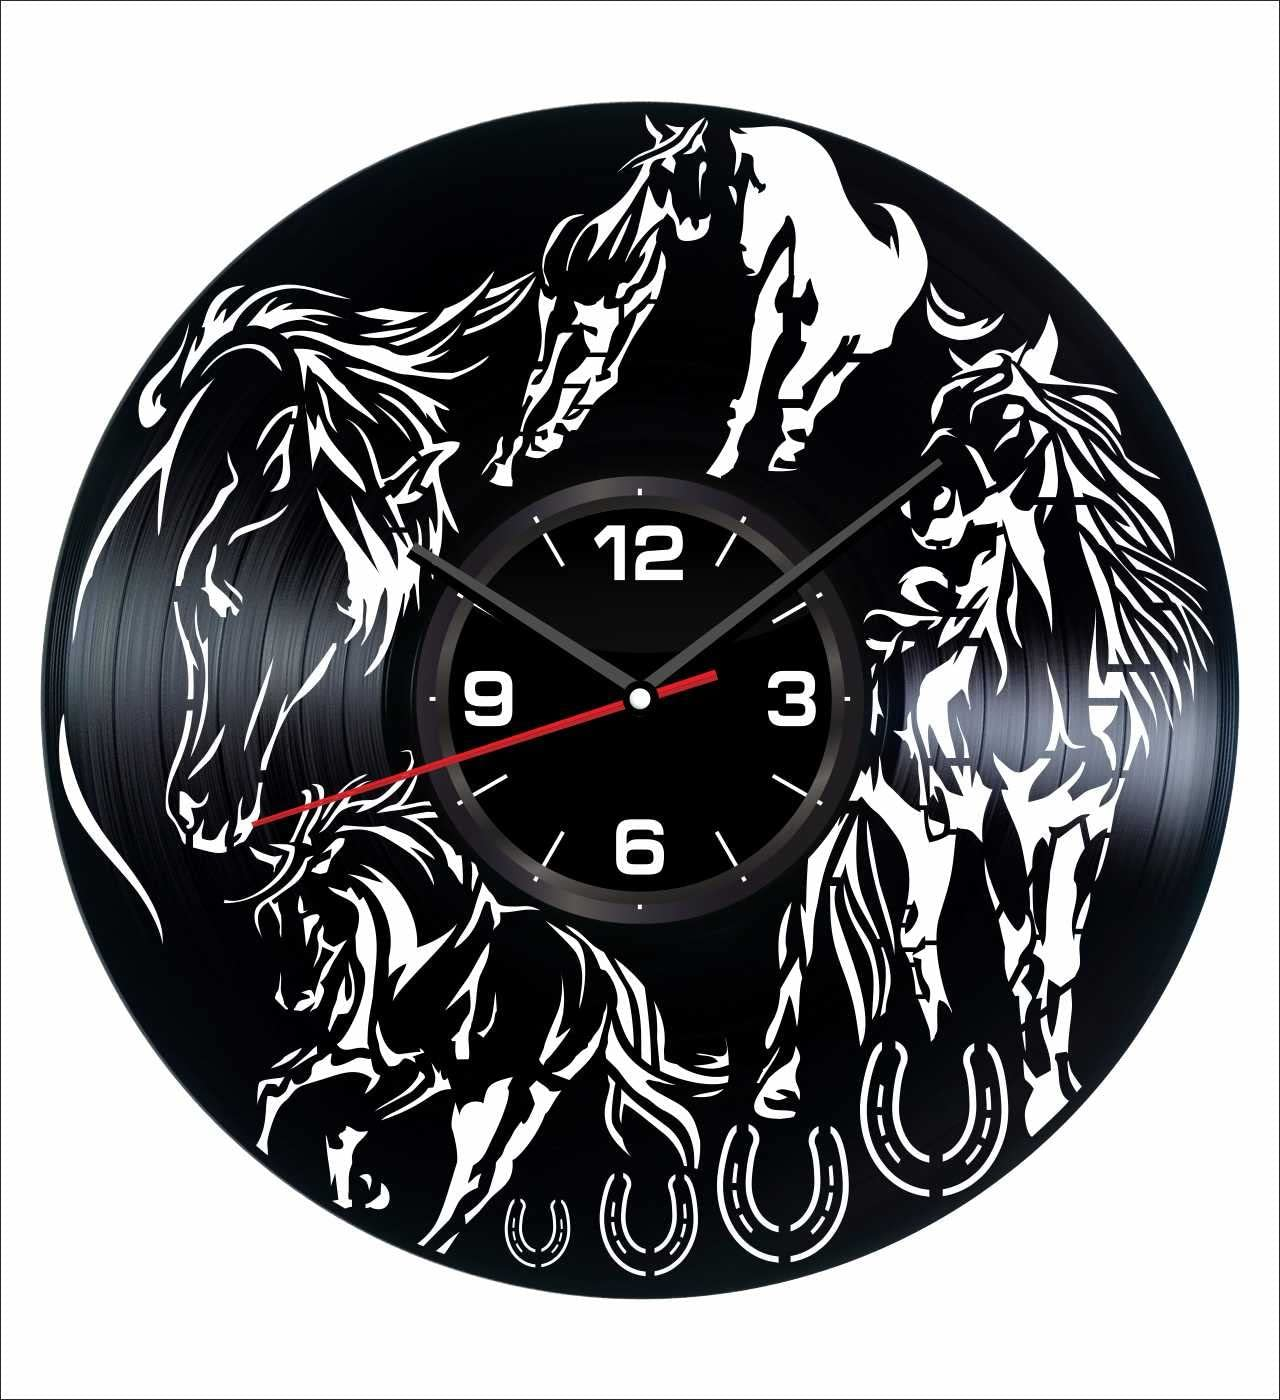 Horses Wall Clock Made of Vintage Vinyl Records - Stylish Clock and Amazing Gift Idea – Unique Home Decor – Personalized Presents for Men Women Kids – Great for Living Room Bedroom Kitchen